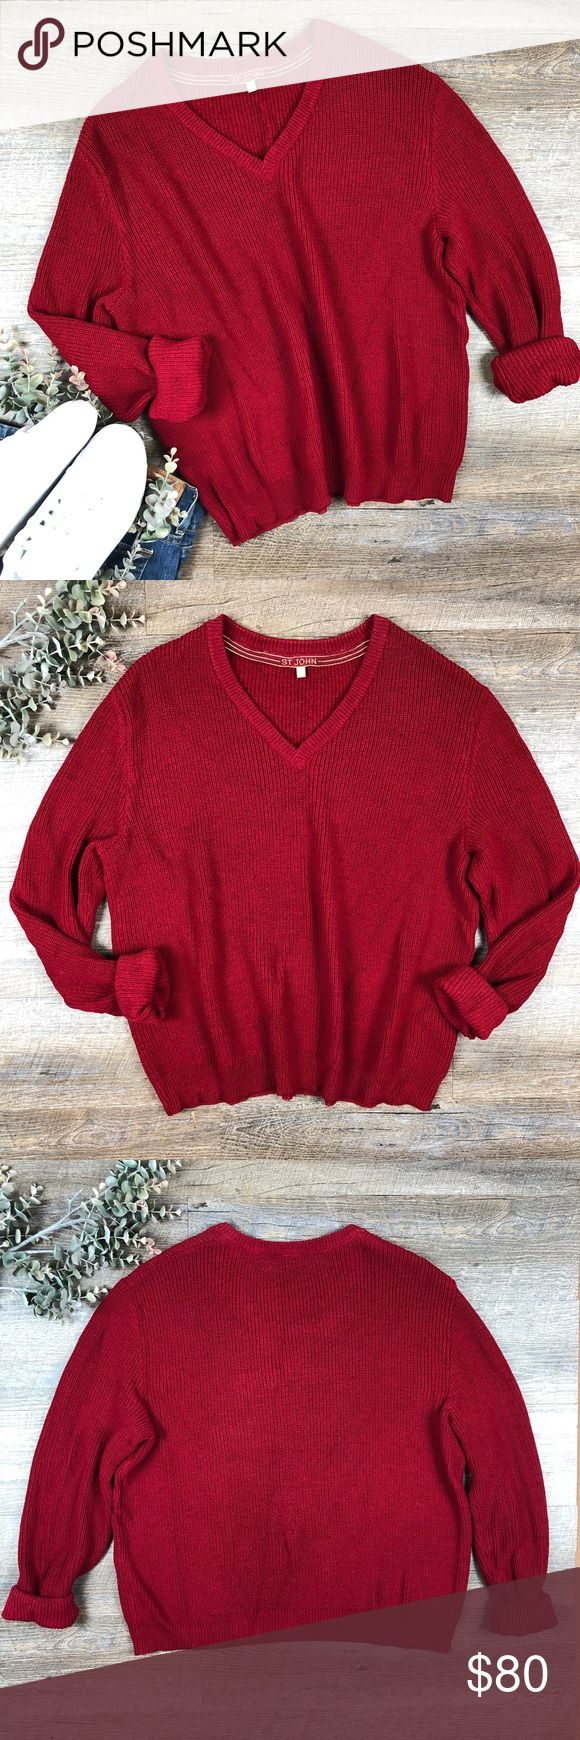 Vintage St John Sweater Gorgeous red vintage St John sweater! Great for the over sized Sweater look. In good condition other then small hole on the back and some wear on the sleeves ( see images). 80% wool, 20% rayon. Size M. (G-5. B) St John Sweaters V-Necks